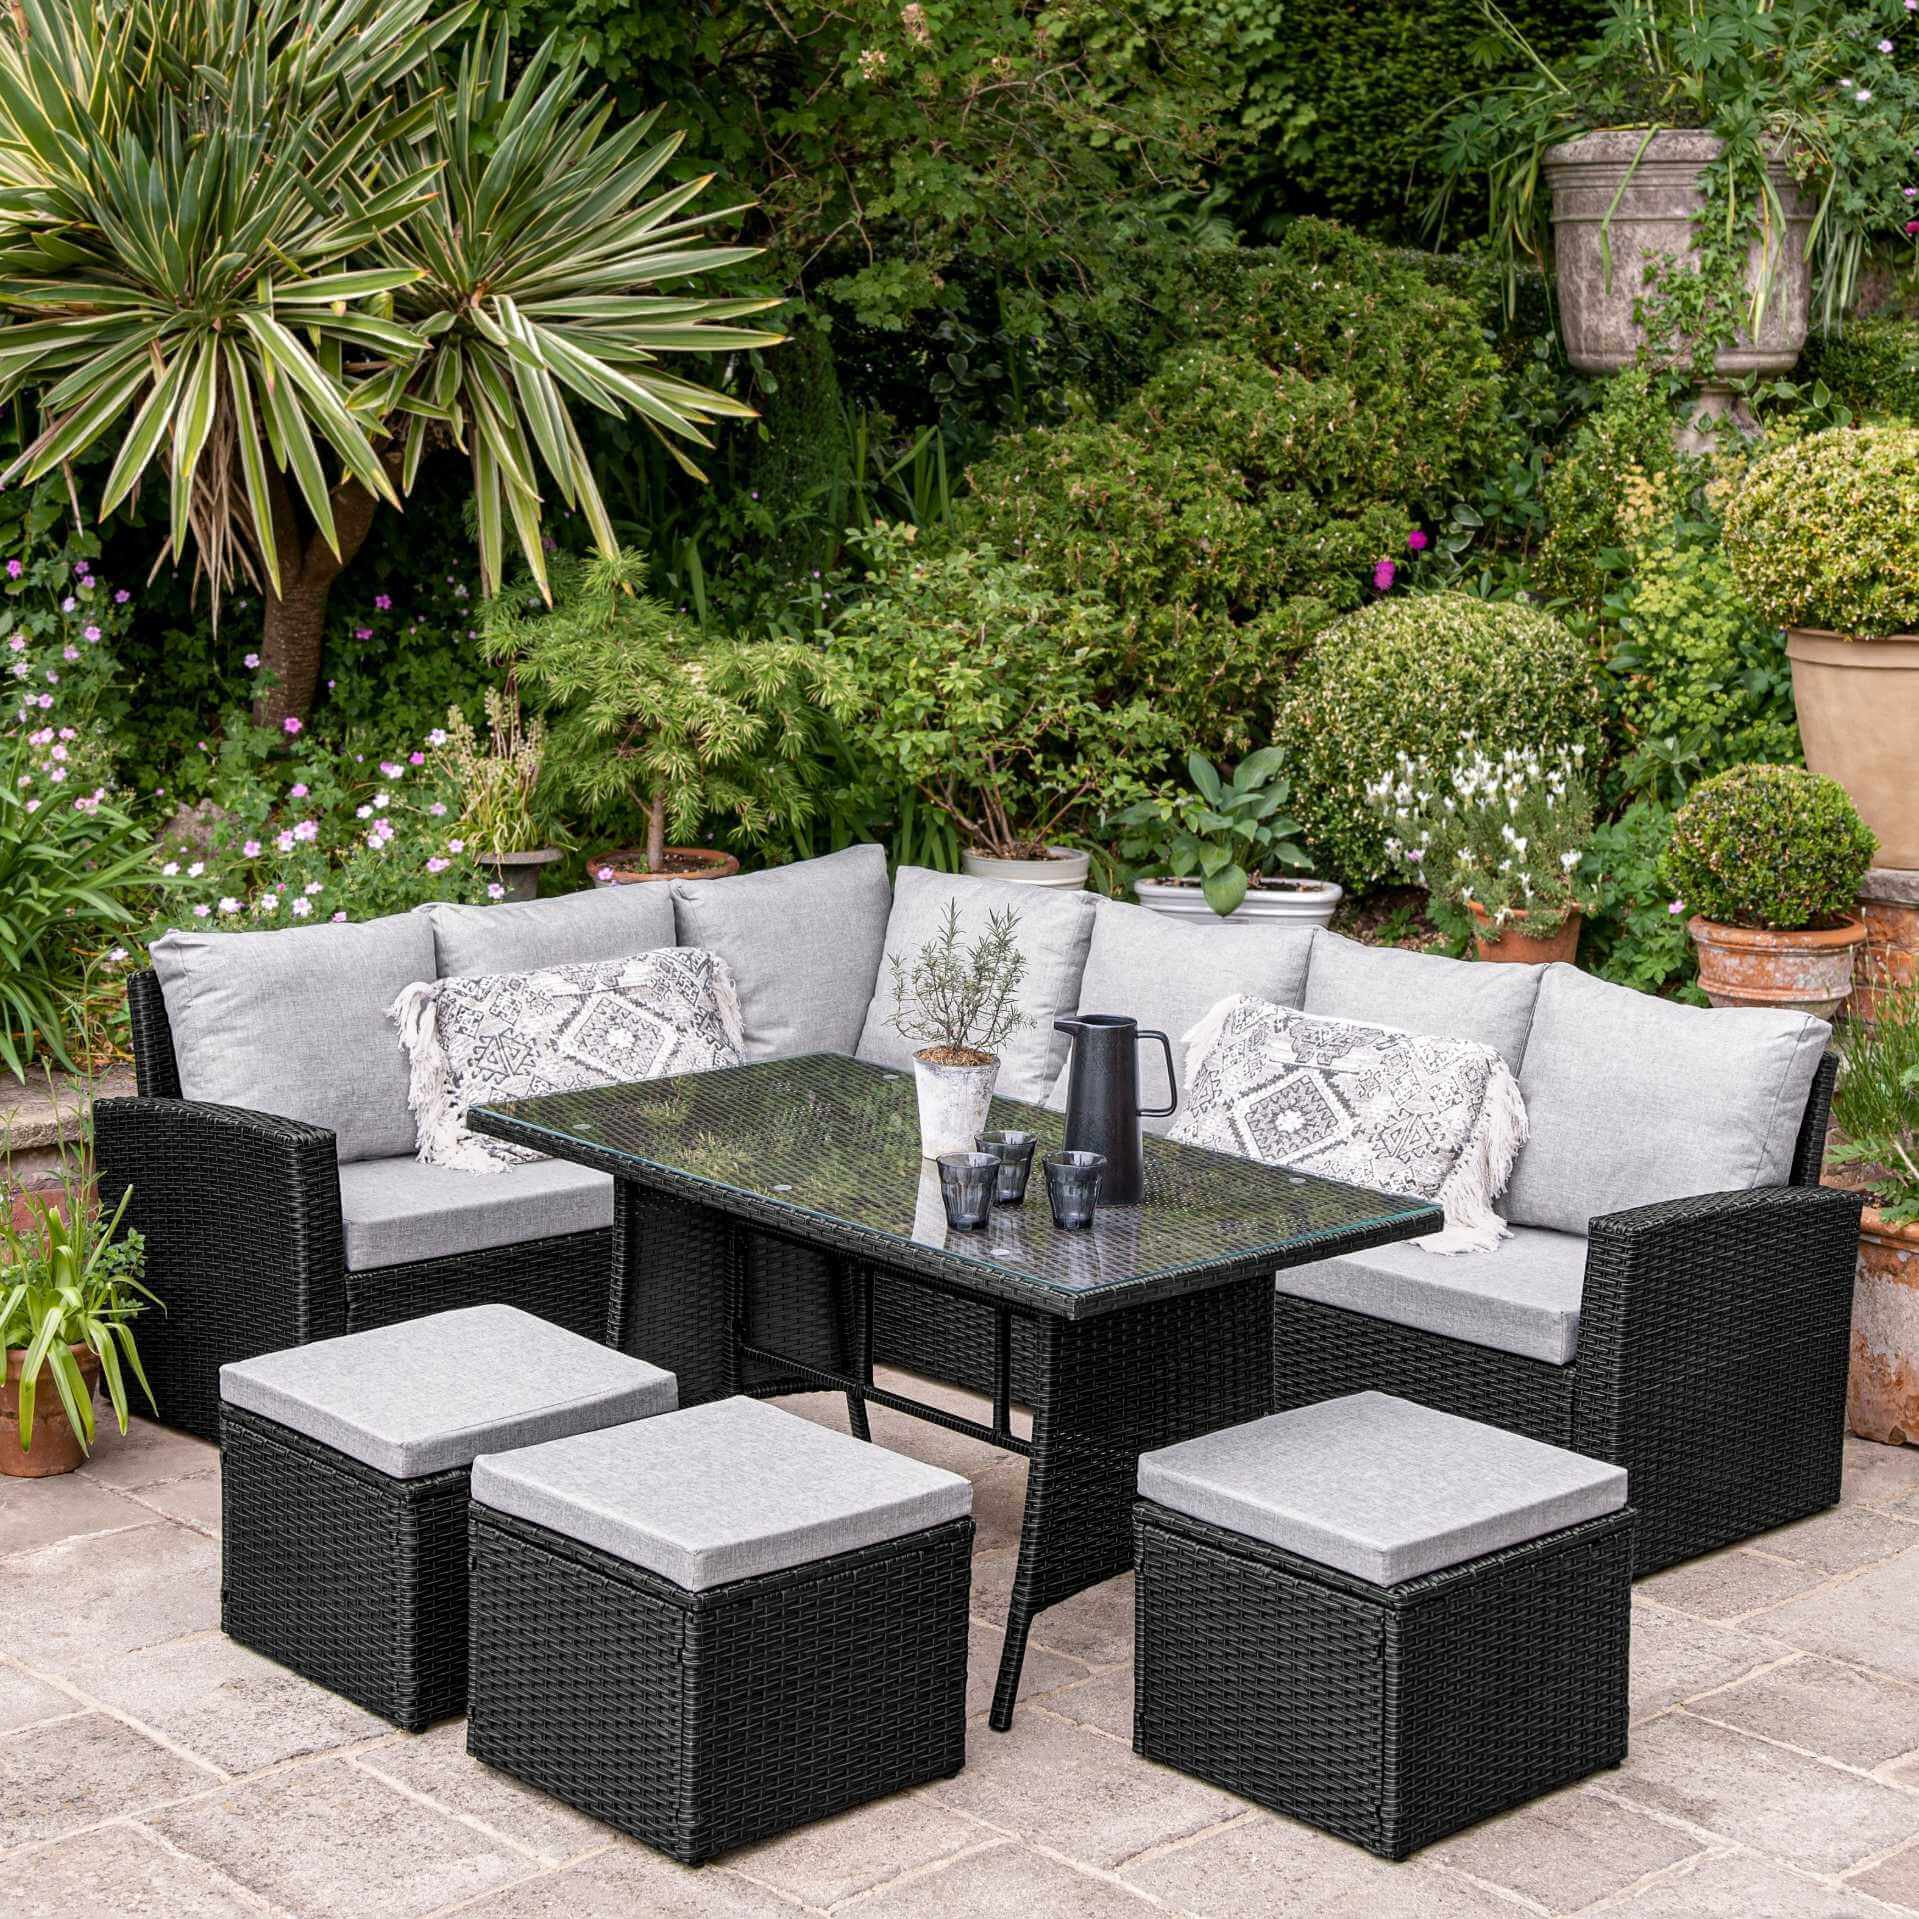 9 Seater Rattan Outdoor Corner Sofa Set - Black Weave